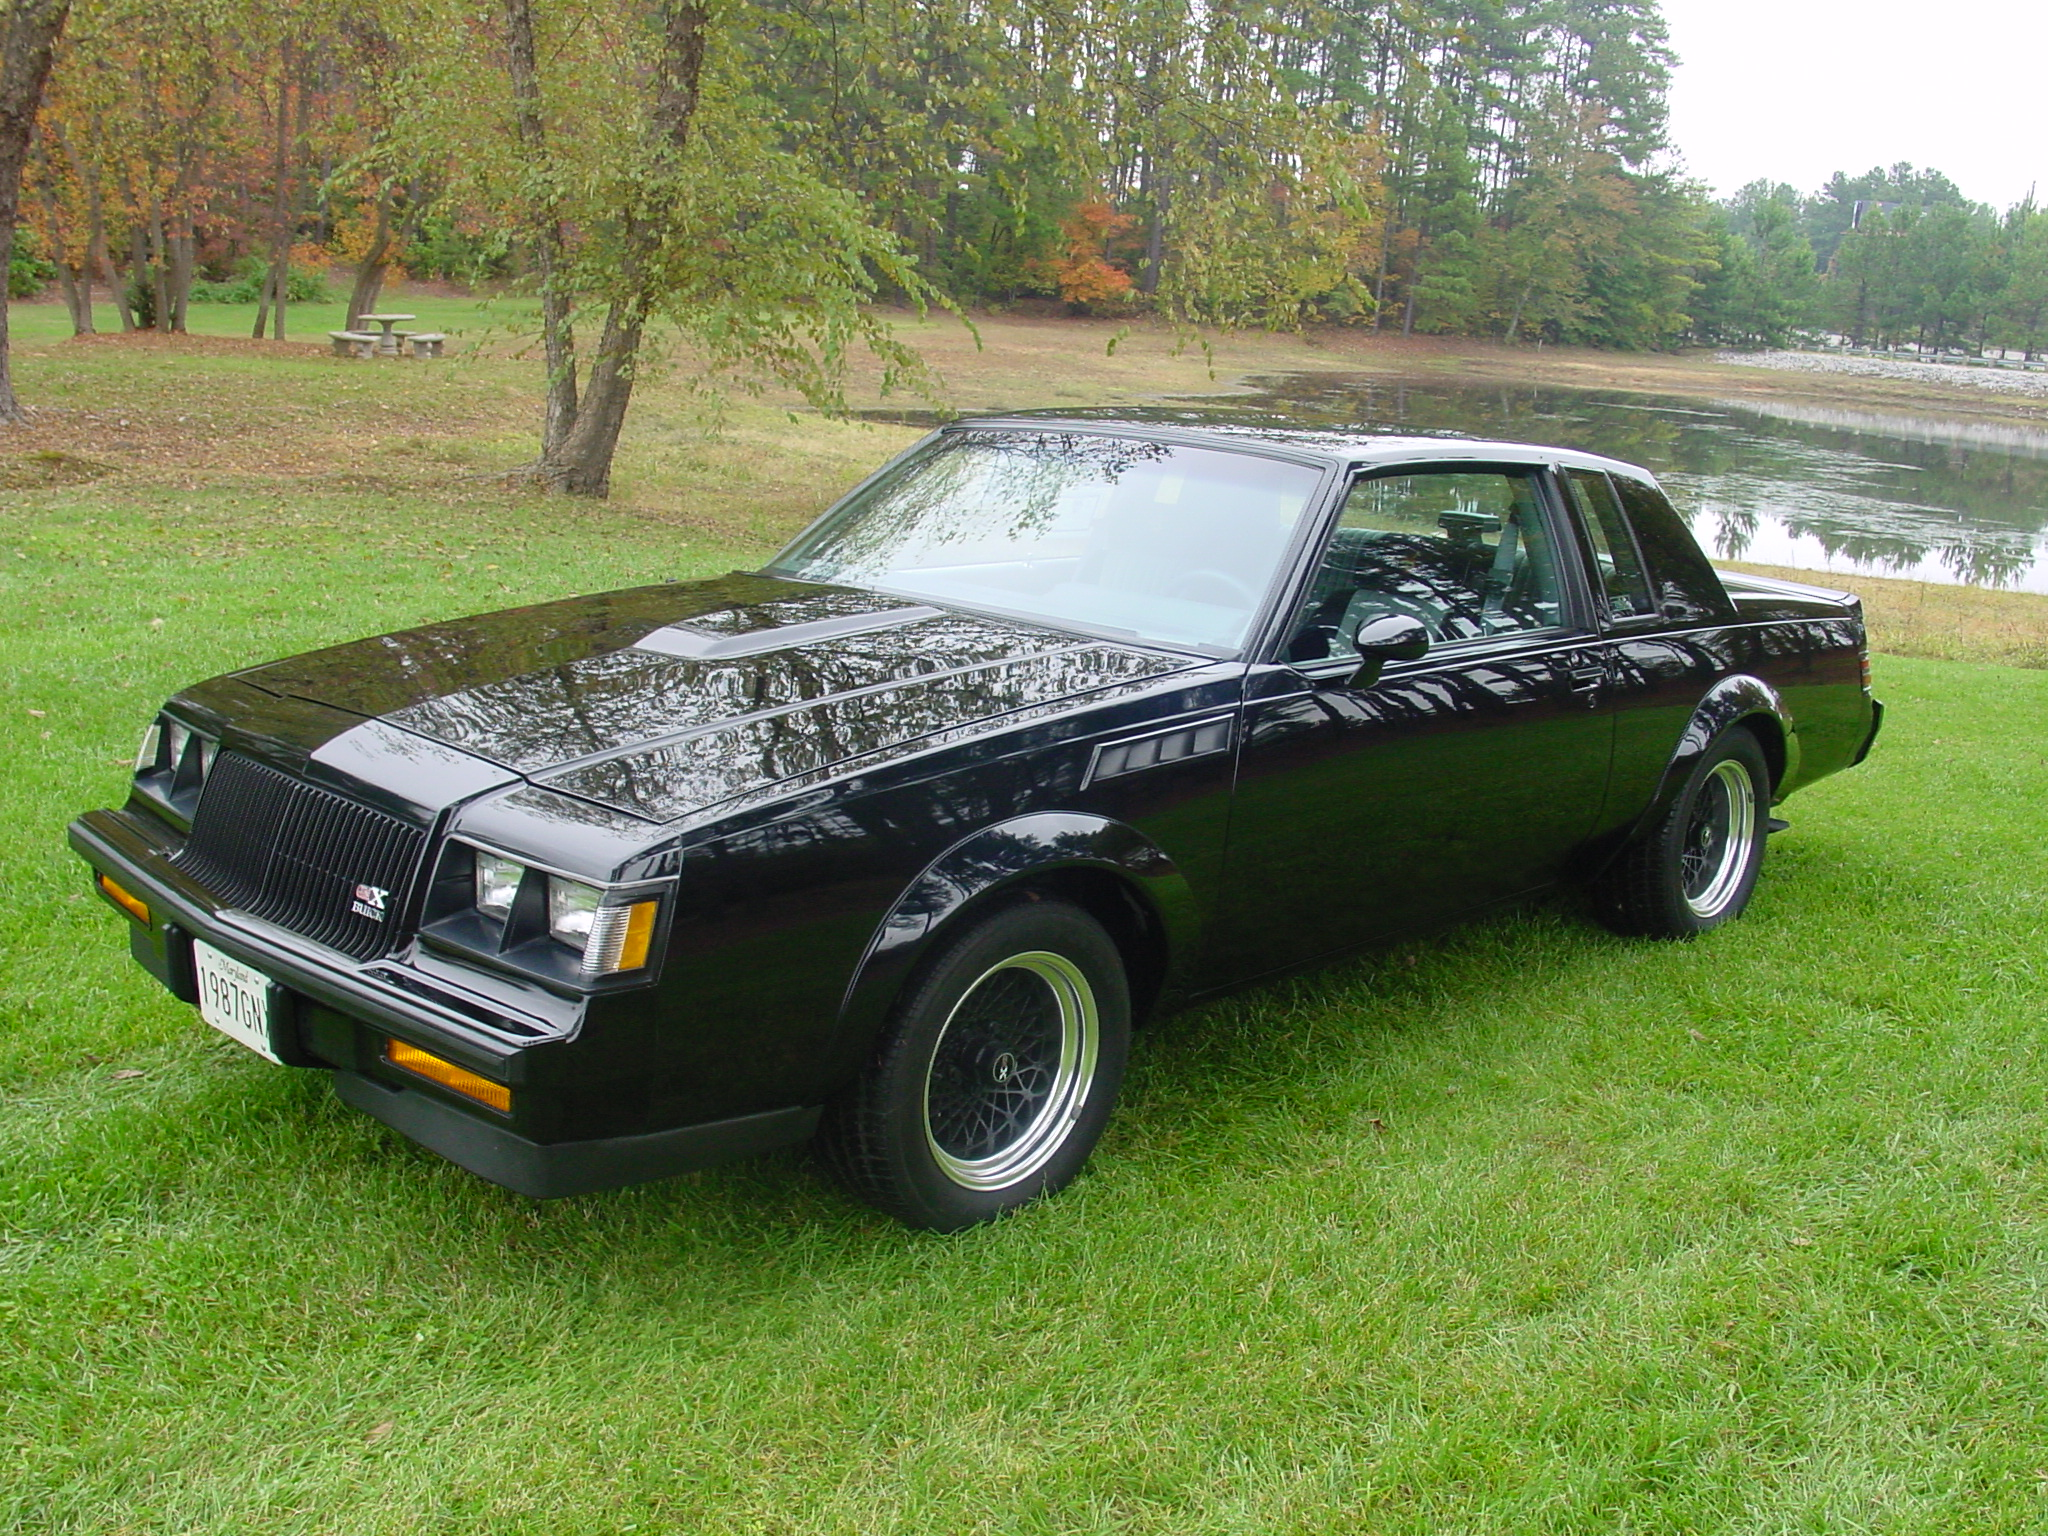 87 buick grand national gnx. Cars Review. Best American Auto & Cars Review